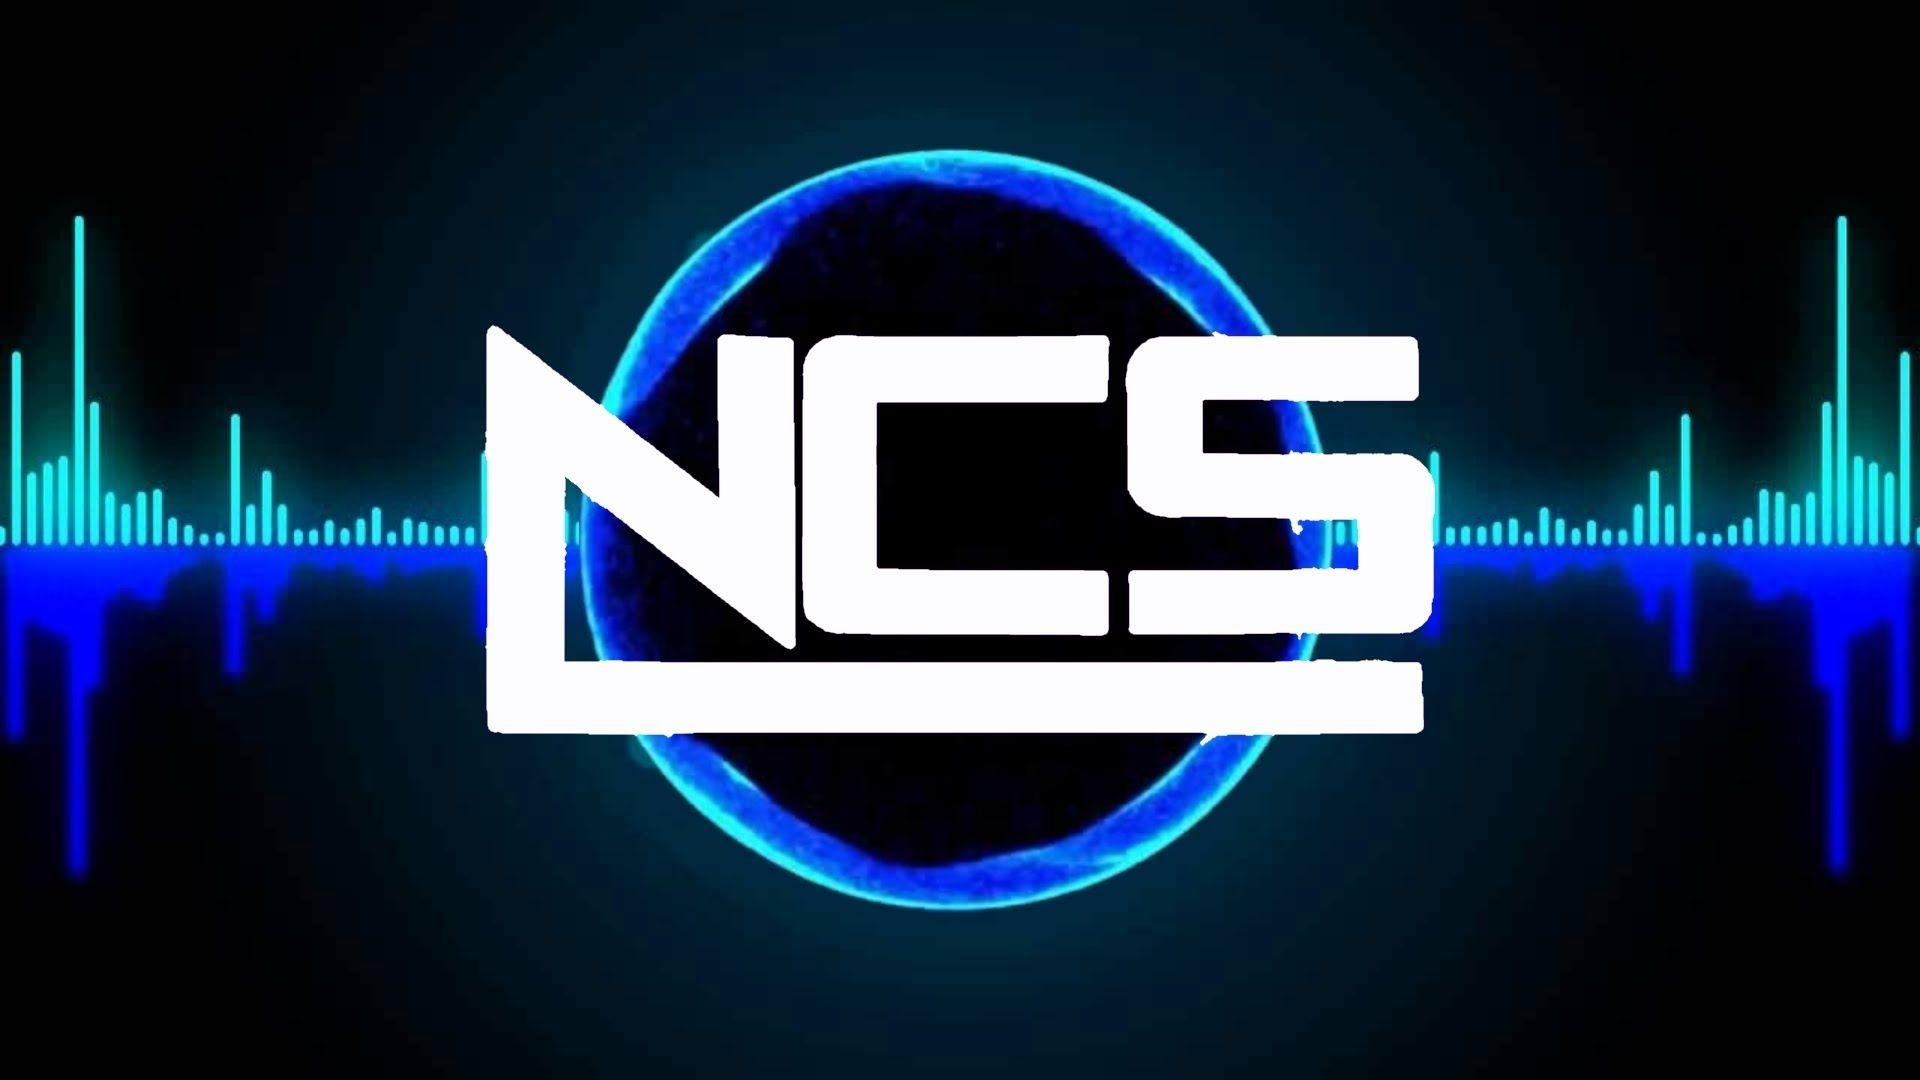 Free cool background music for games Download Best Ncs Gaming